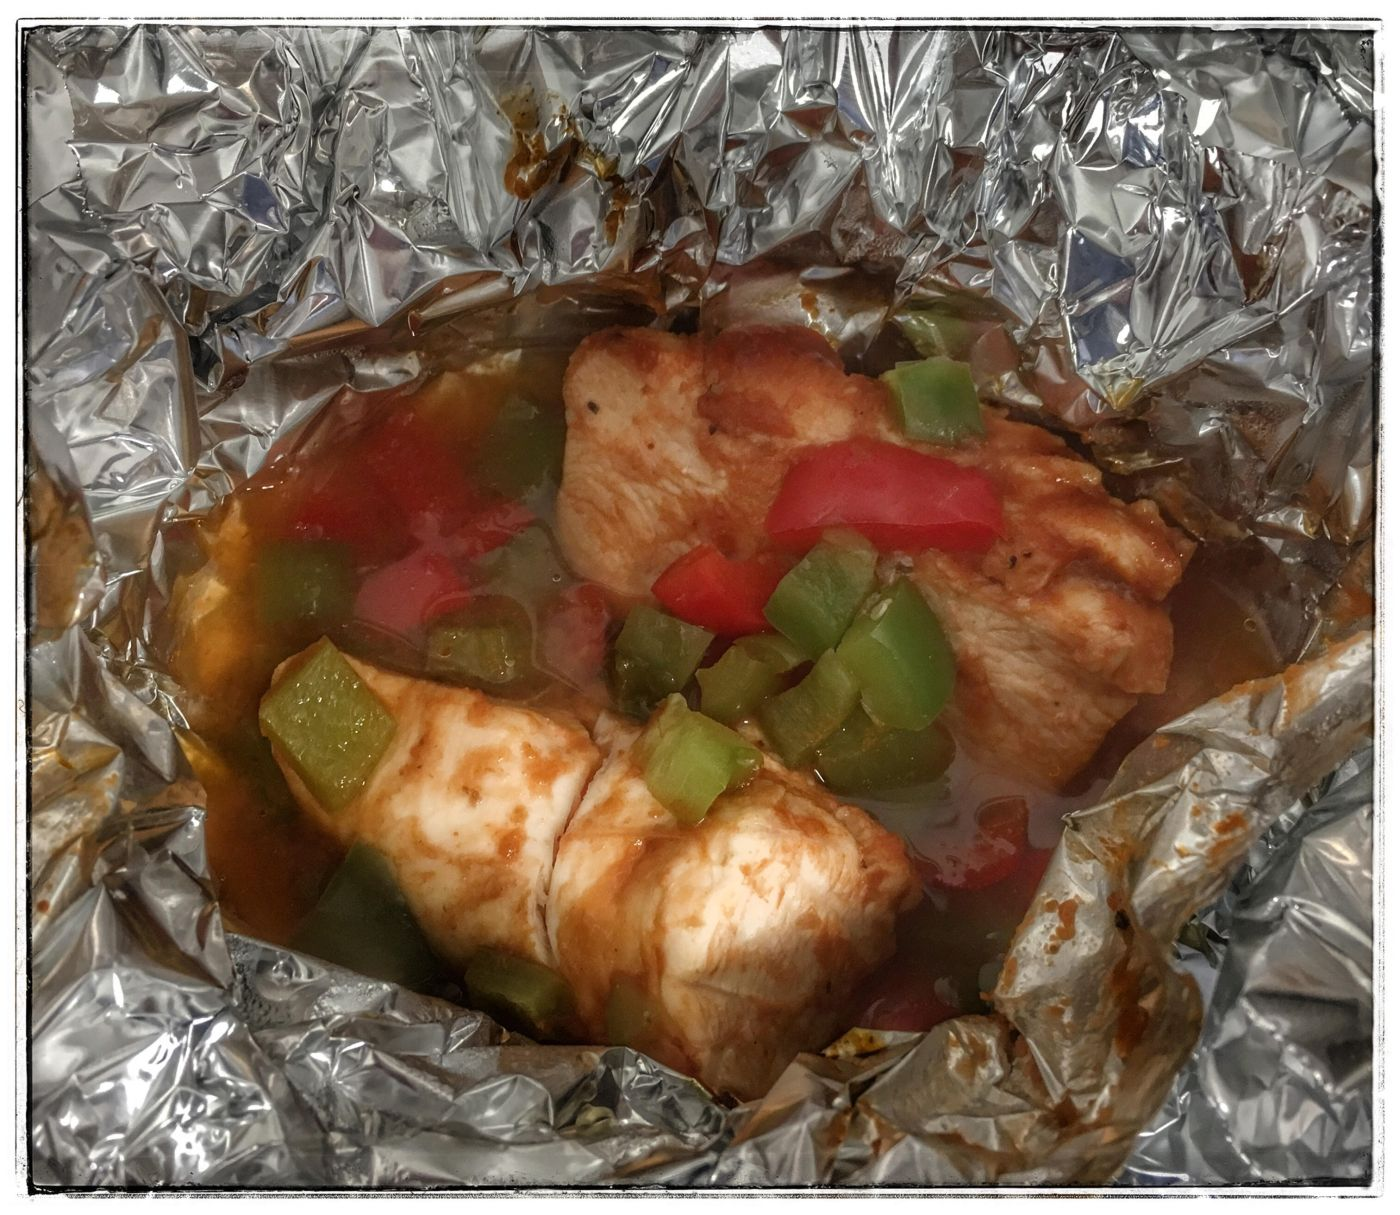 BBQ Chicken and Veggies Foil Pack. Summer. Recipes. Easy. Grill.